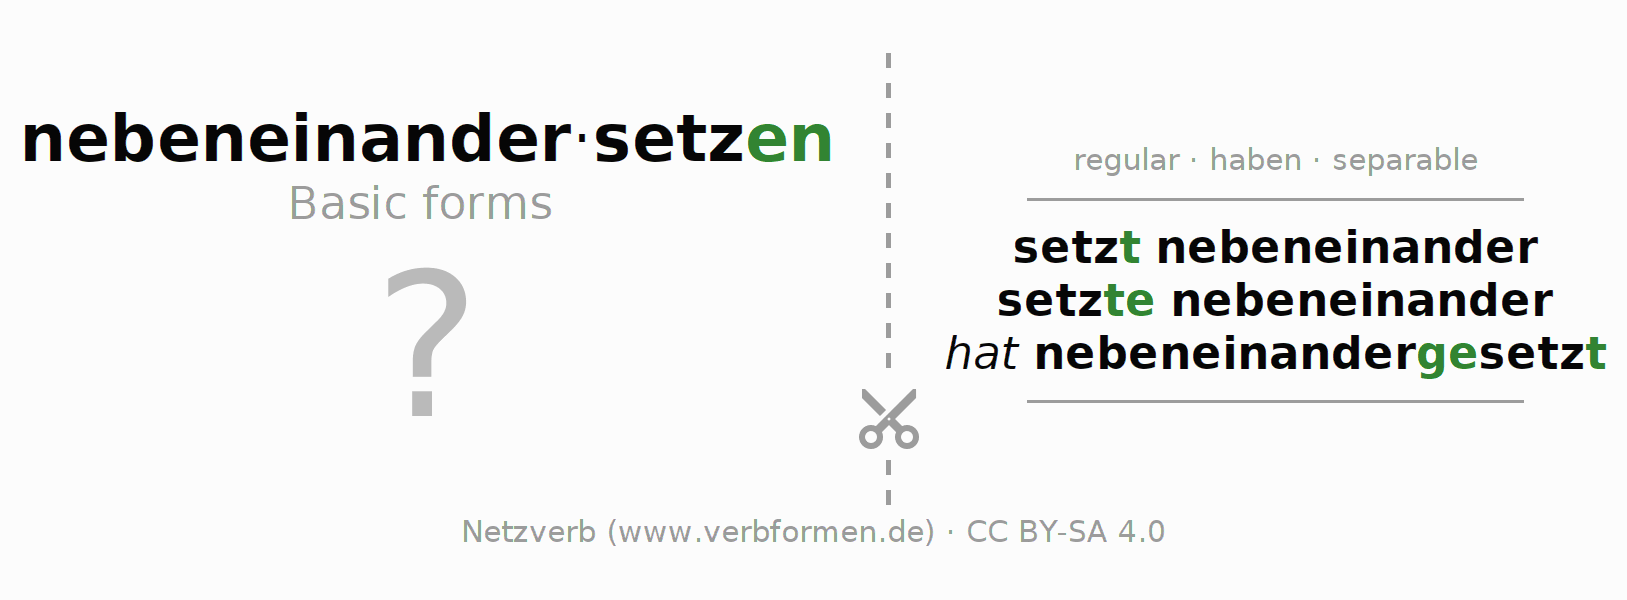 Flash cards for the conjugation of the verb nebeneinandersetzen